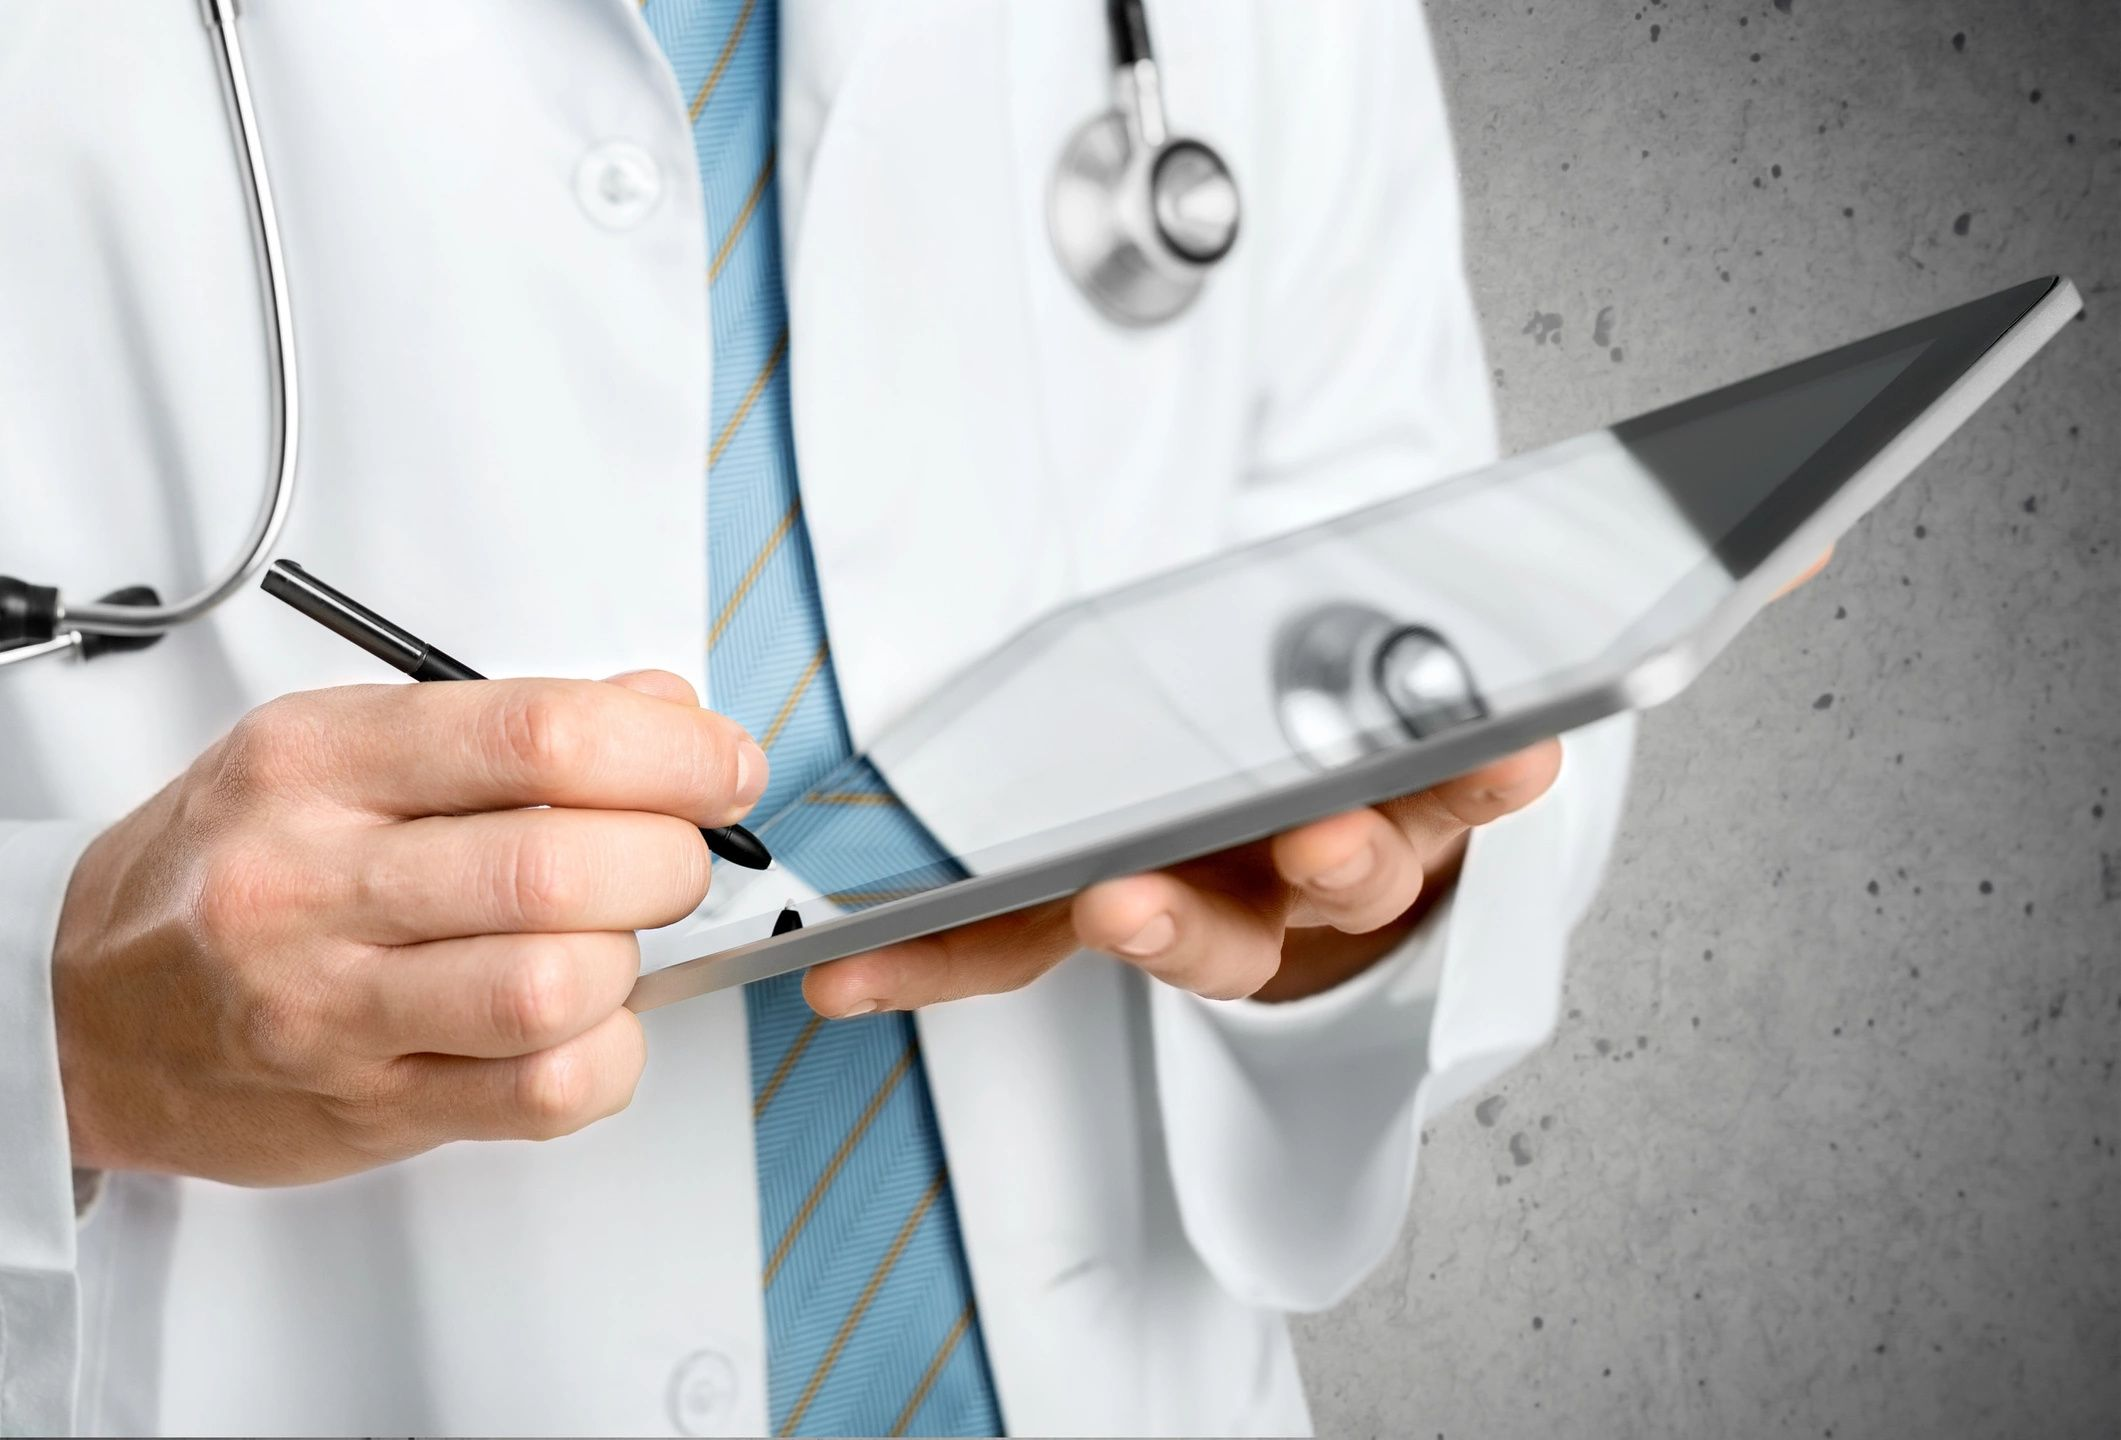 Doctor holds a tablet and writes on it with a stylus